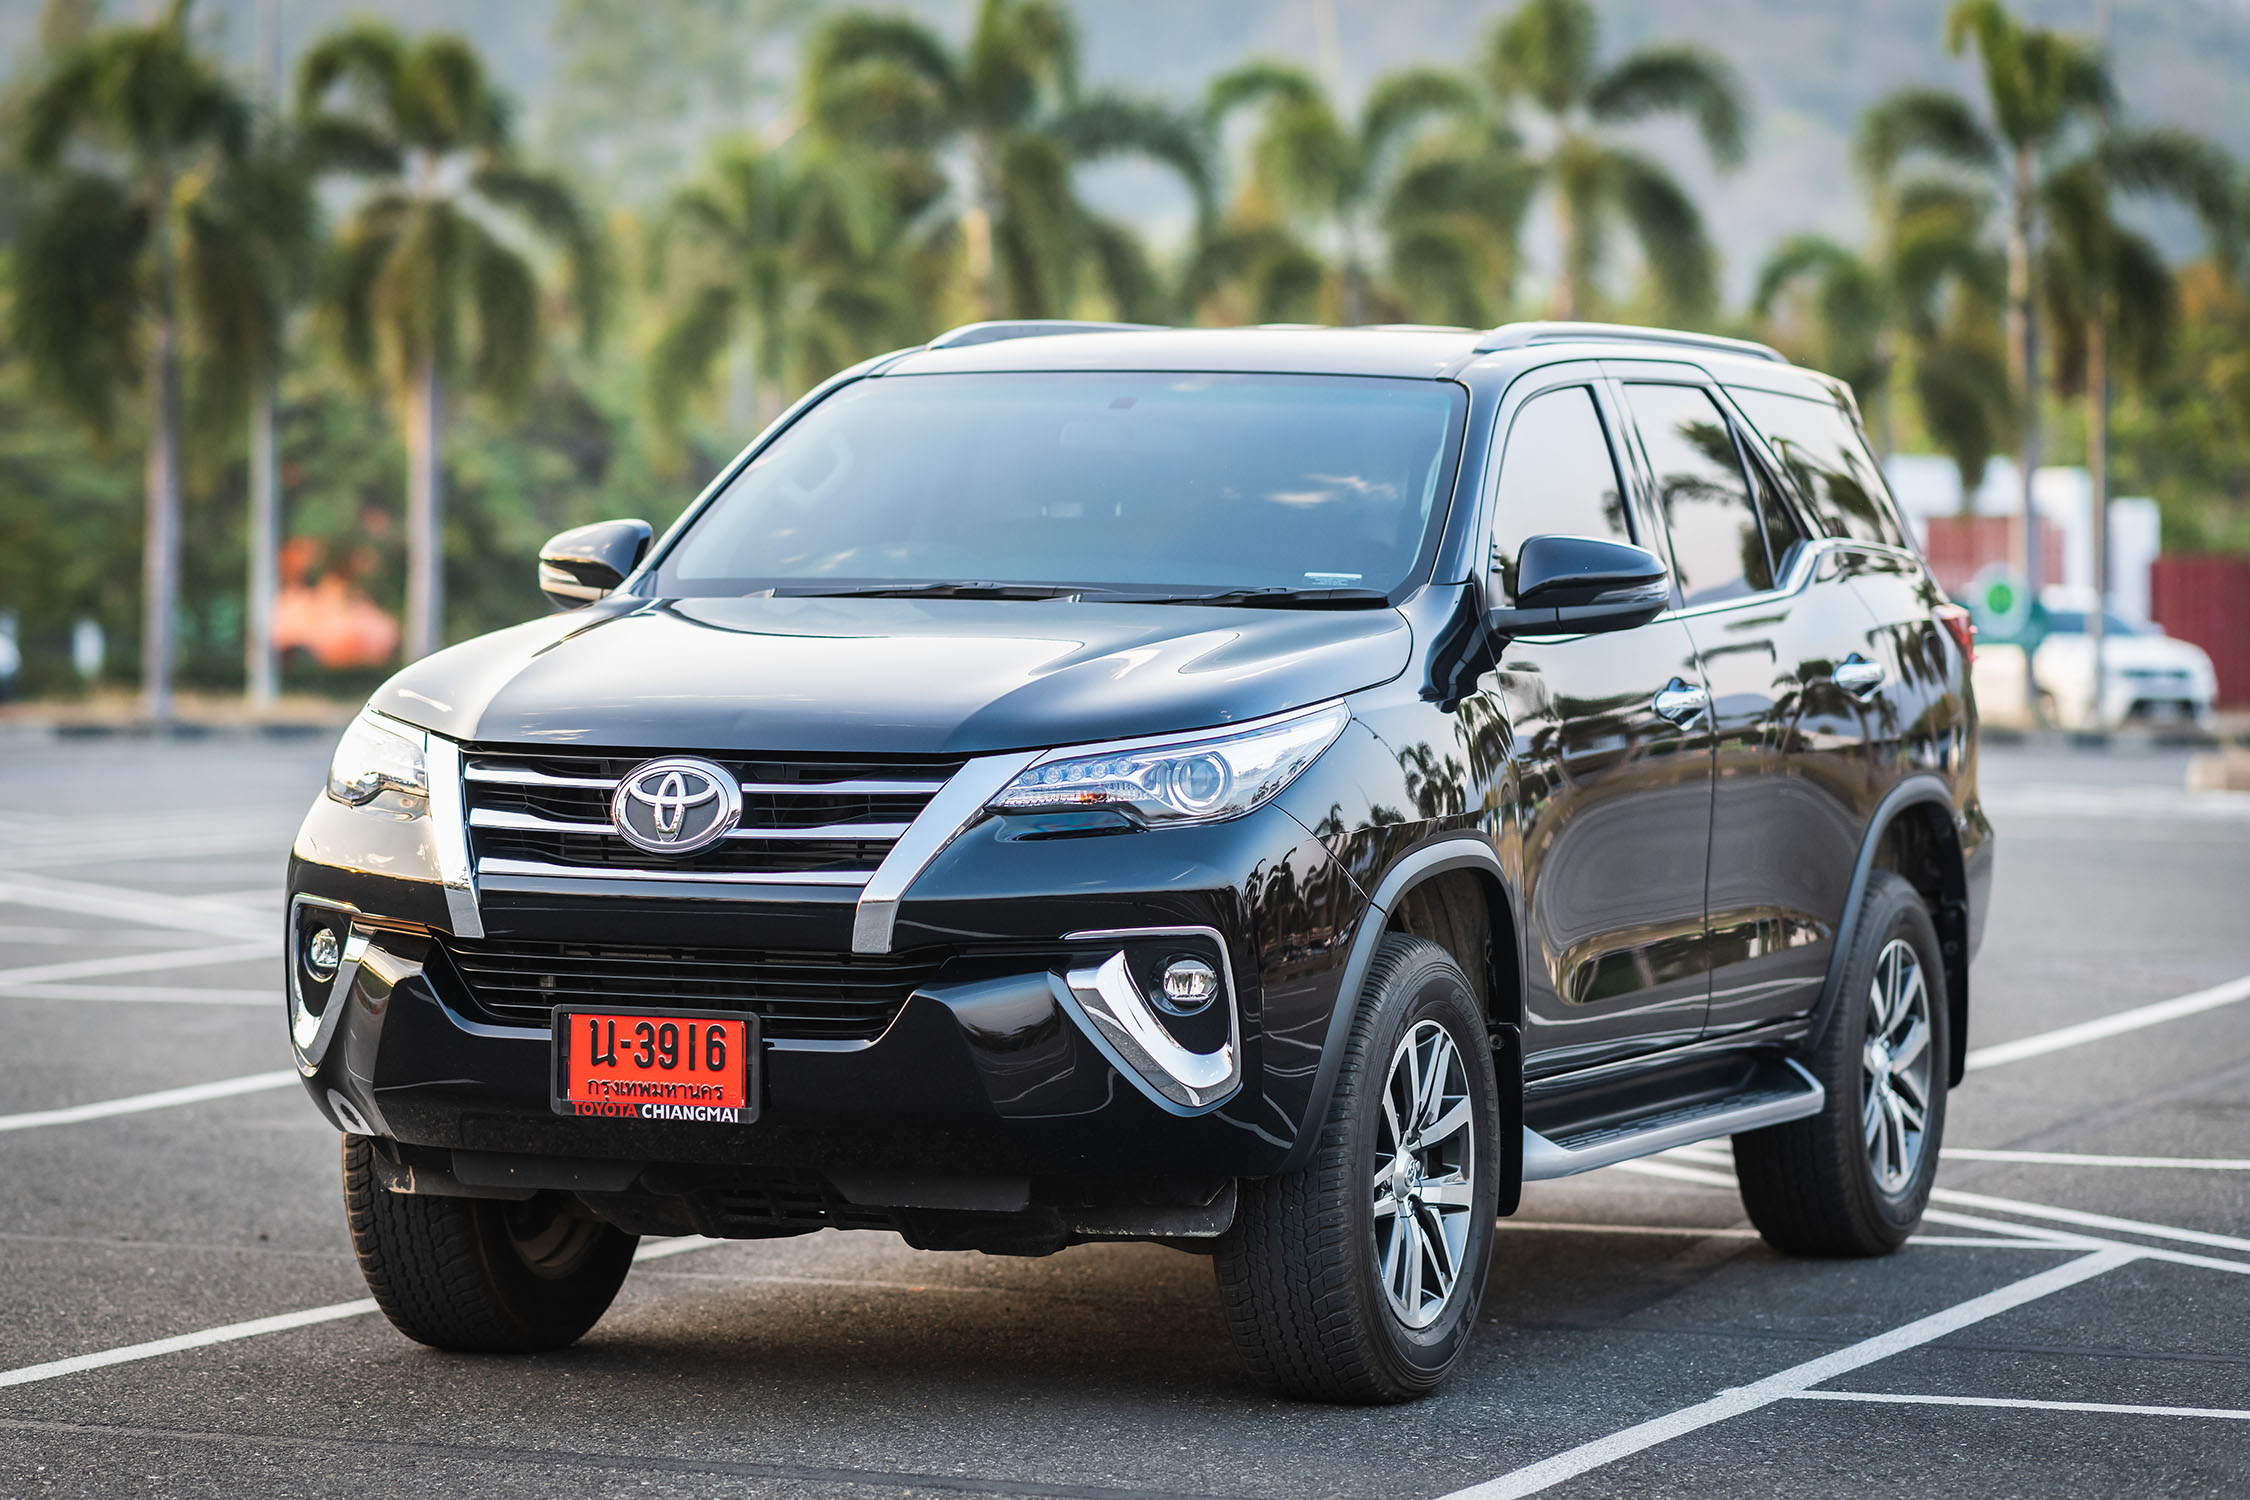 frontview of all new fortuner black color 2019 now available for rental in chiangmai chiang rai lamphun